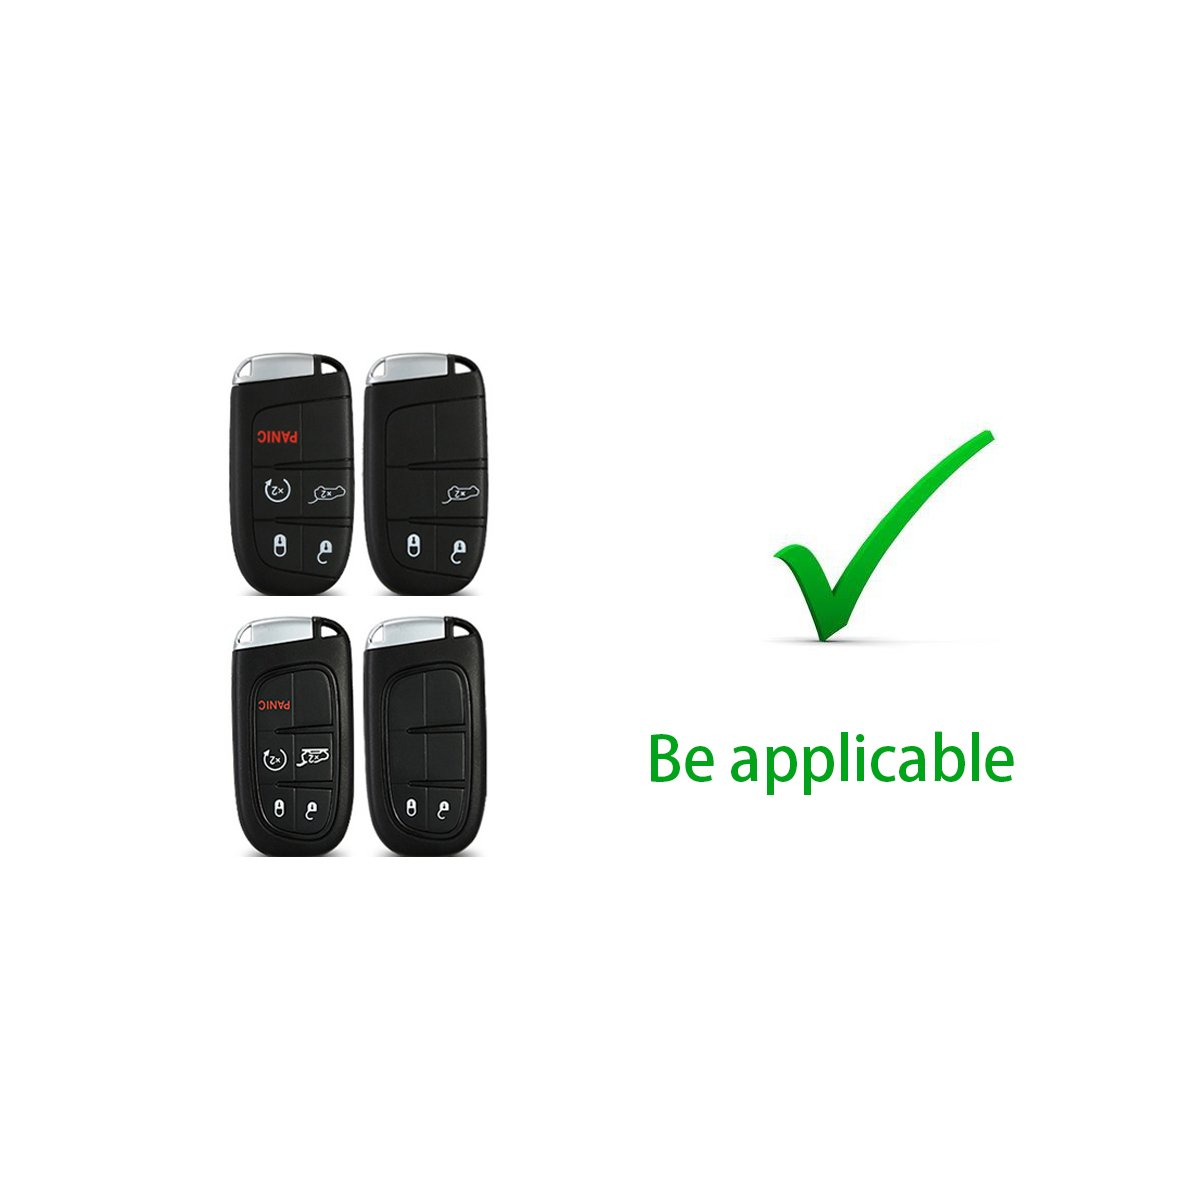 MODIPIM Keyless Entry Remote Cover Soft TPU Key Fob Case With Braided Cord Keychain For JEEP Grand Cherokee Wrangler Compass Patriot 2//3//4//5-Buttons Smart Key Color Silver